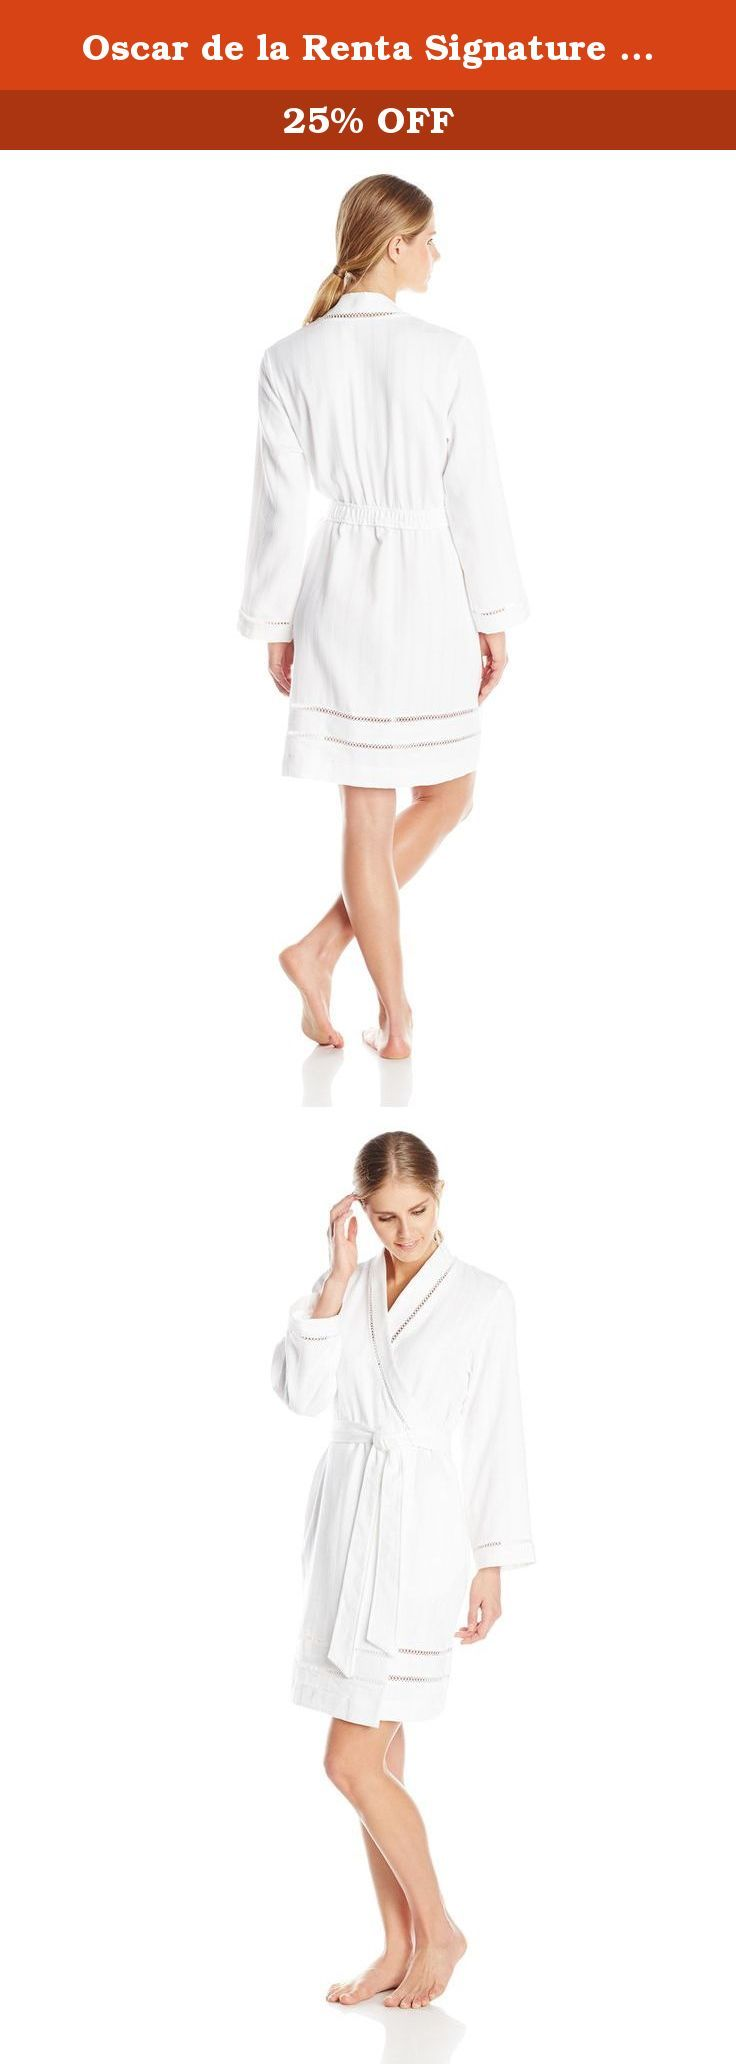 Oscar de la Renta Signature Women's Brushed Cotton Short Spa Robe, White, Medium/Large. Soft and luxe, our cotton spa short robe is an elegant essential from day to night. Fabricated in a brushed cotton stripe waffle and trimmed with a woven cotton border and venise lace inset.